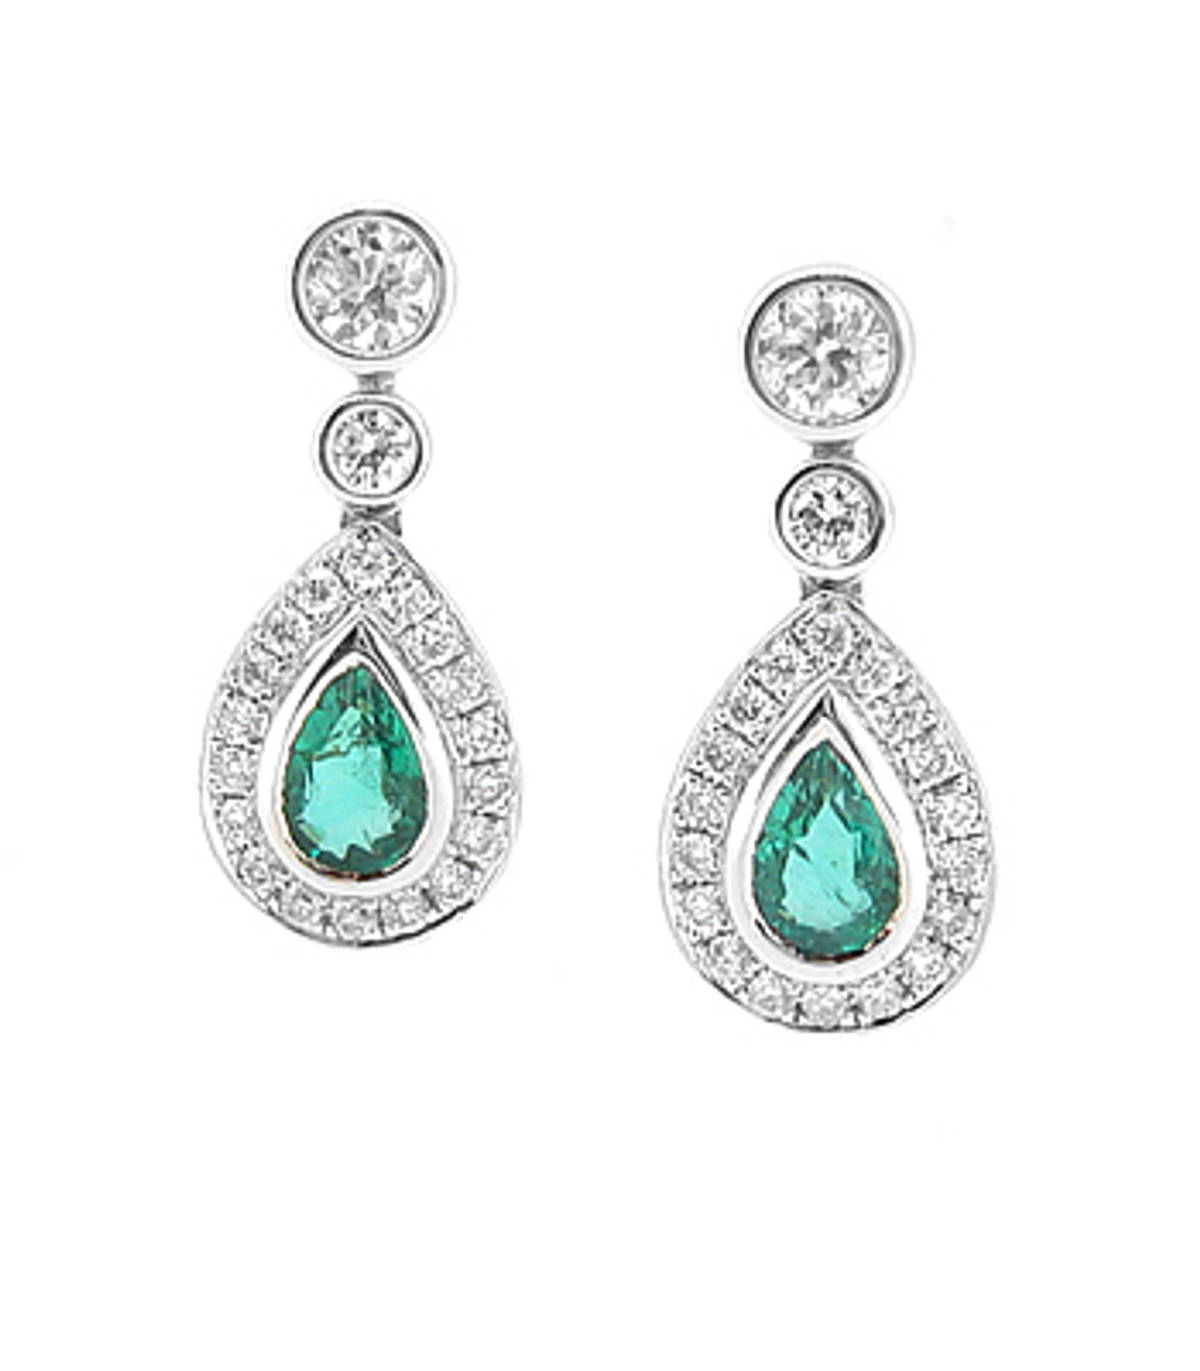 EMERALD AND DIAMOND CLUSTER EARRINGSPictured item: 0.63ct diamonds/0.71ct emerald set in 18k white gold